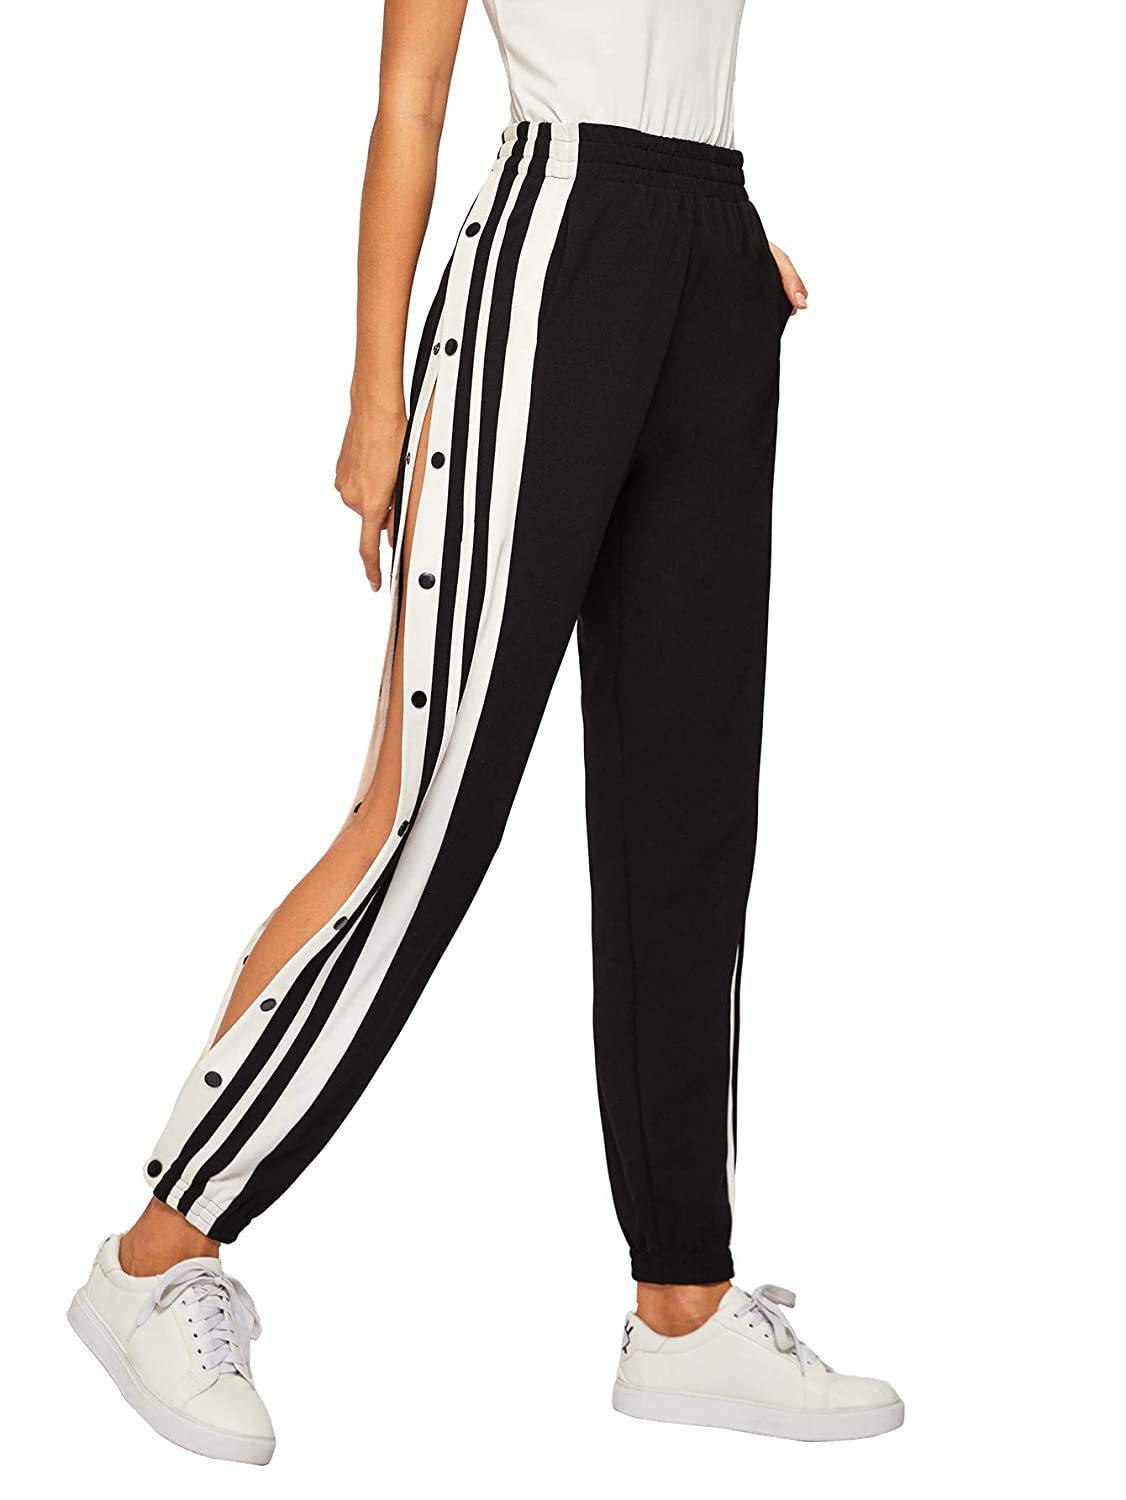 80055a4f SOLY HUX Women's Sporty High Split Side Striped Joggers Snap Button Track  Pants at Amazon Women's Clothing store: